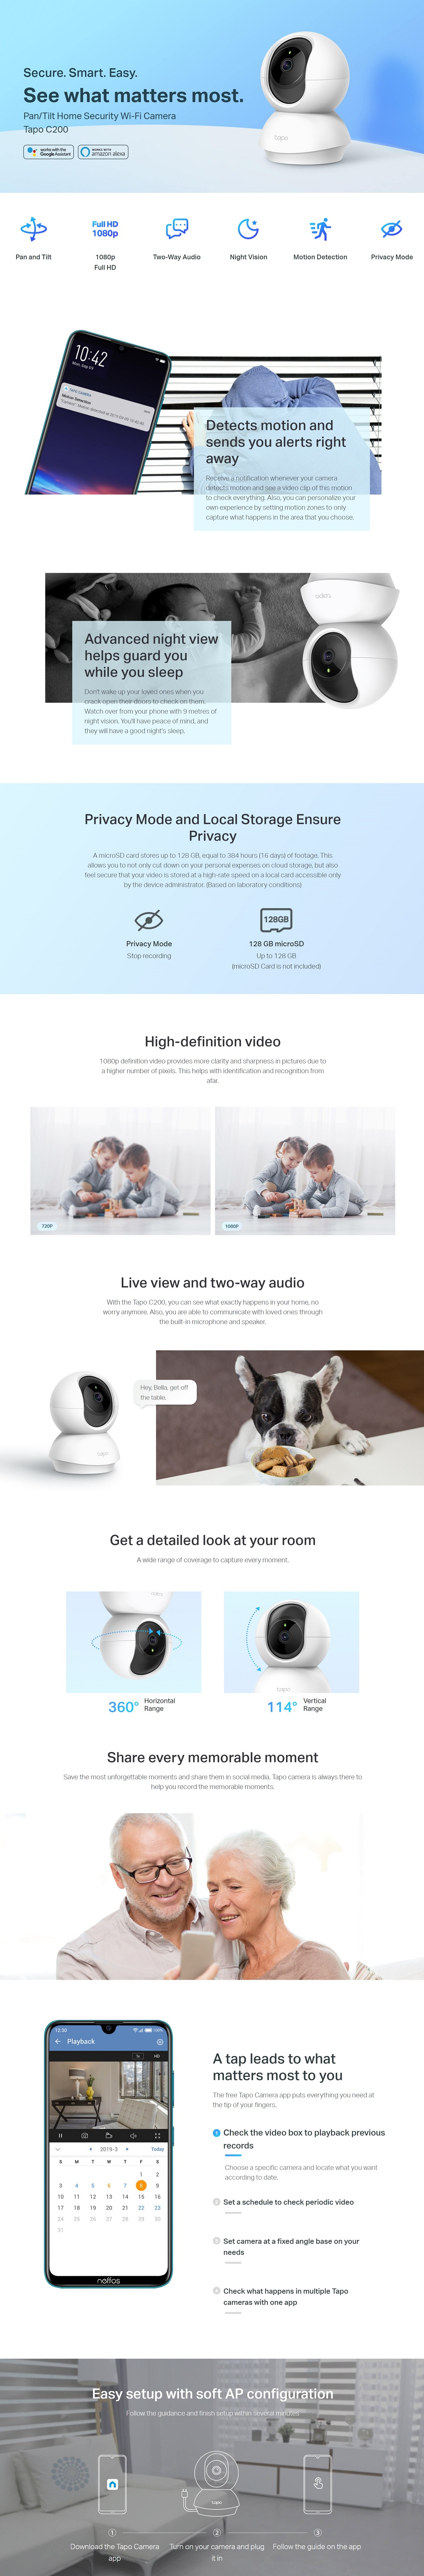 TP-Link 2-pack Tapo C200 Pan/Tilt 1080p Security Camera FHD Works Smart Home